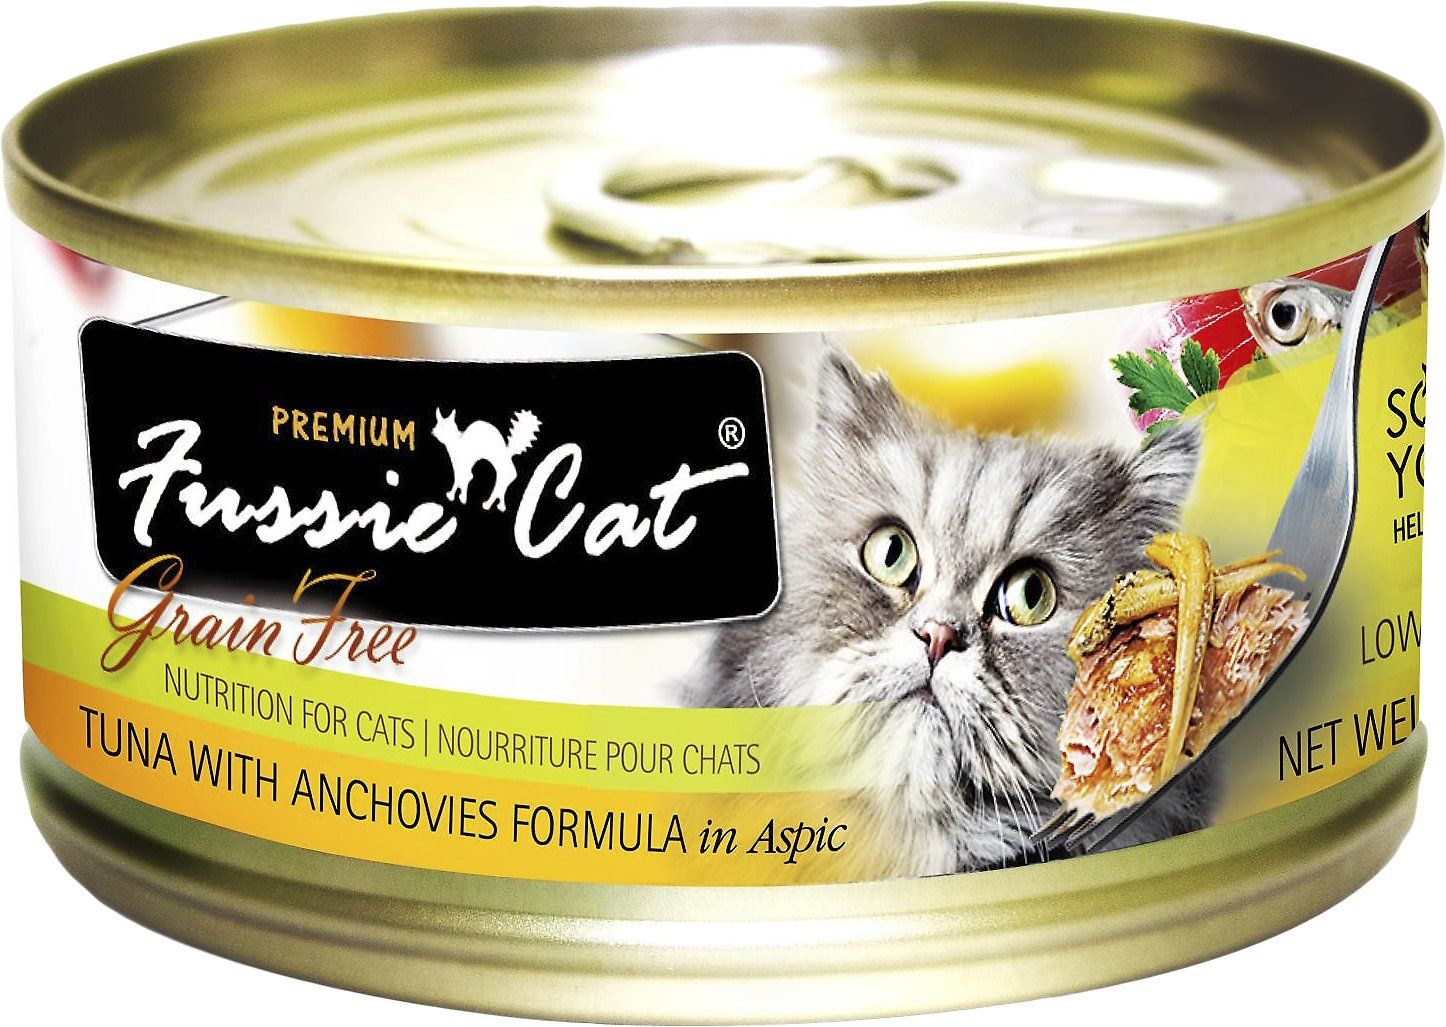 Fussie Cat Premium cat food is made in a state of the are